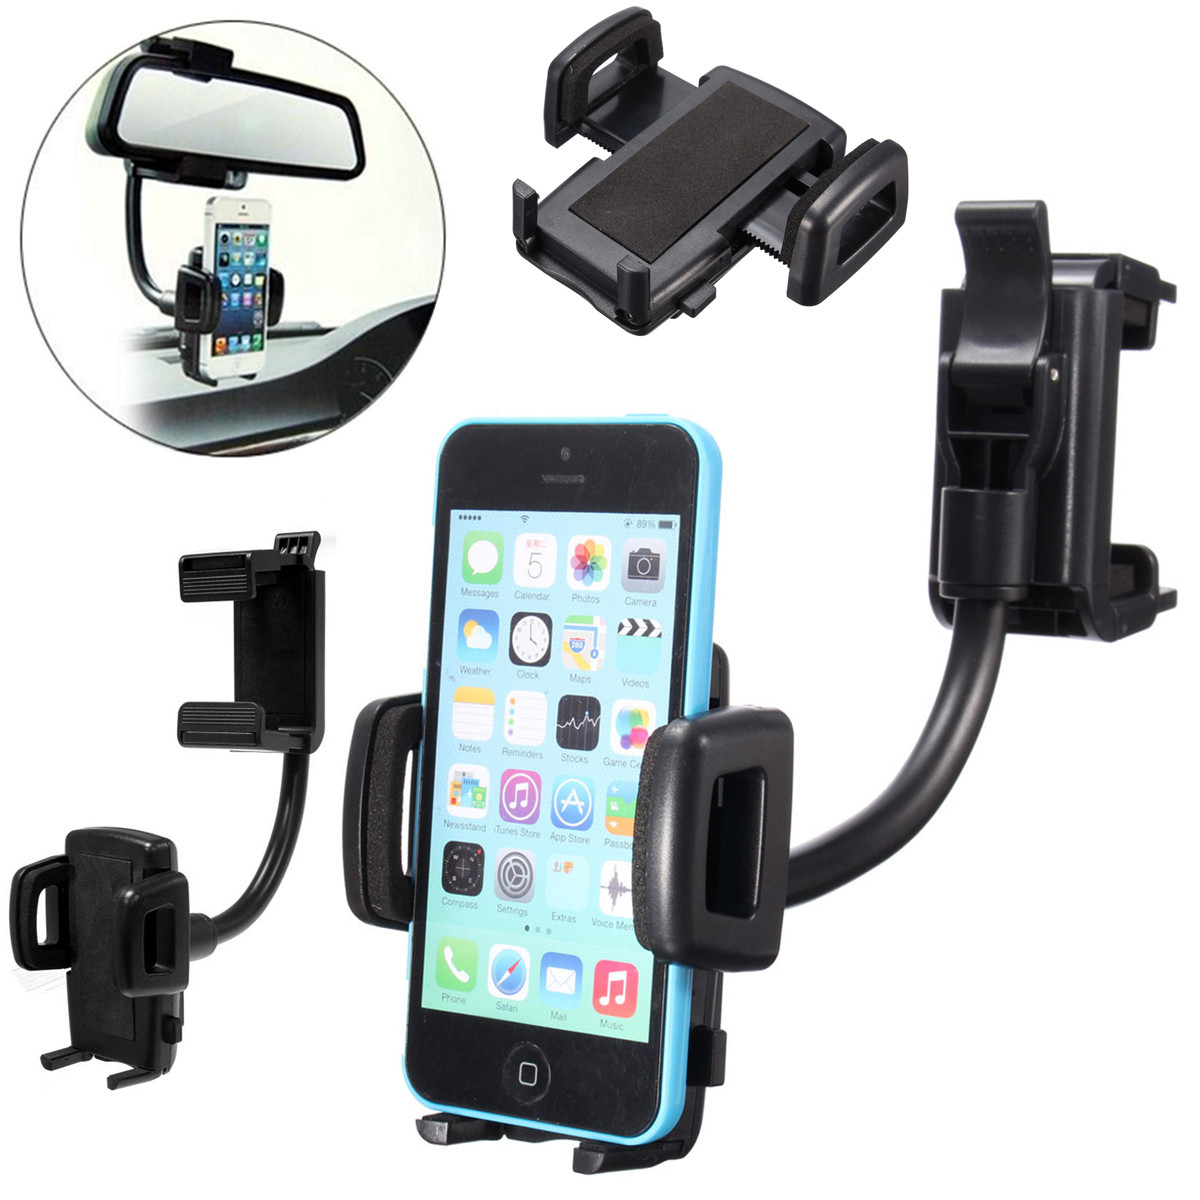 Car rearview mirror mount holder car reviews - Adjustable Length And Height Of The Car Rear Clip With Its Length From 6 7 To 10 5cm And Its Height From 2 2 To 4 8cm Which Fits Almost All Cars